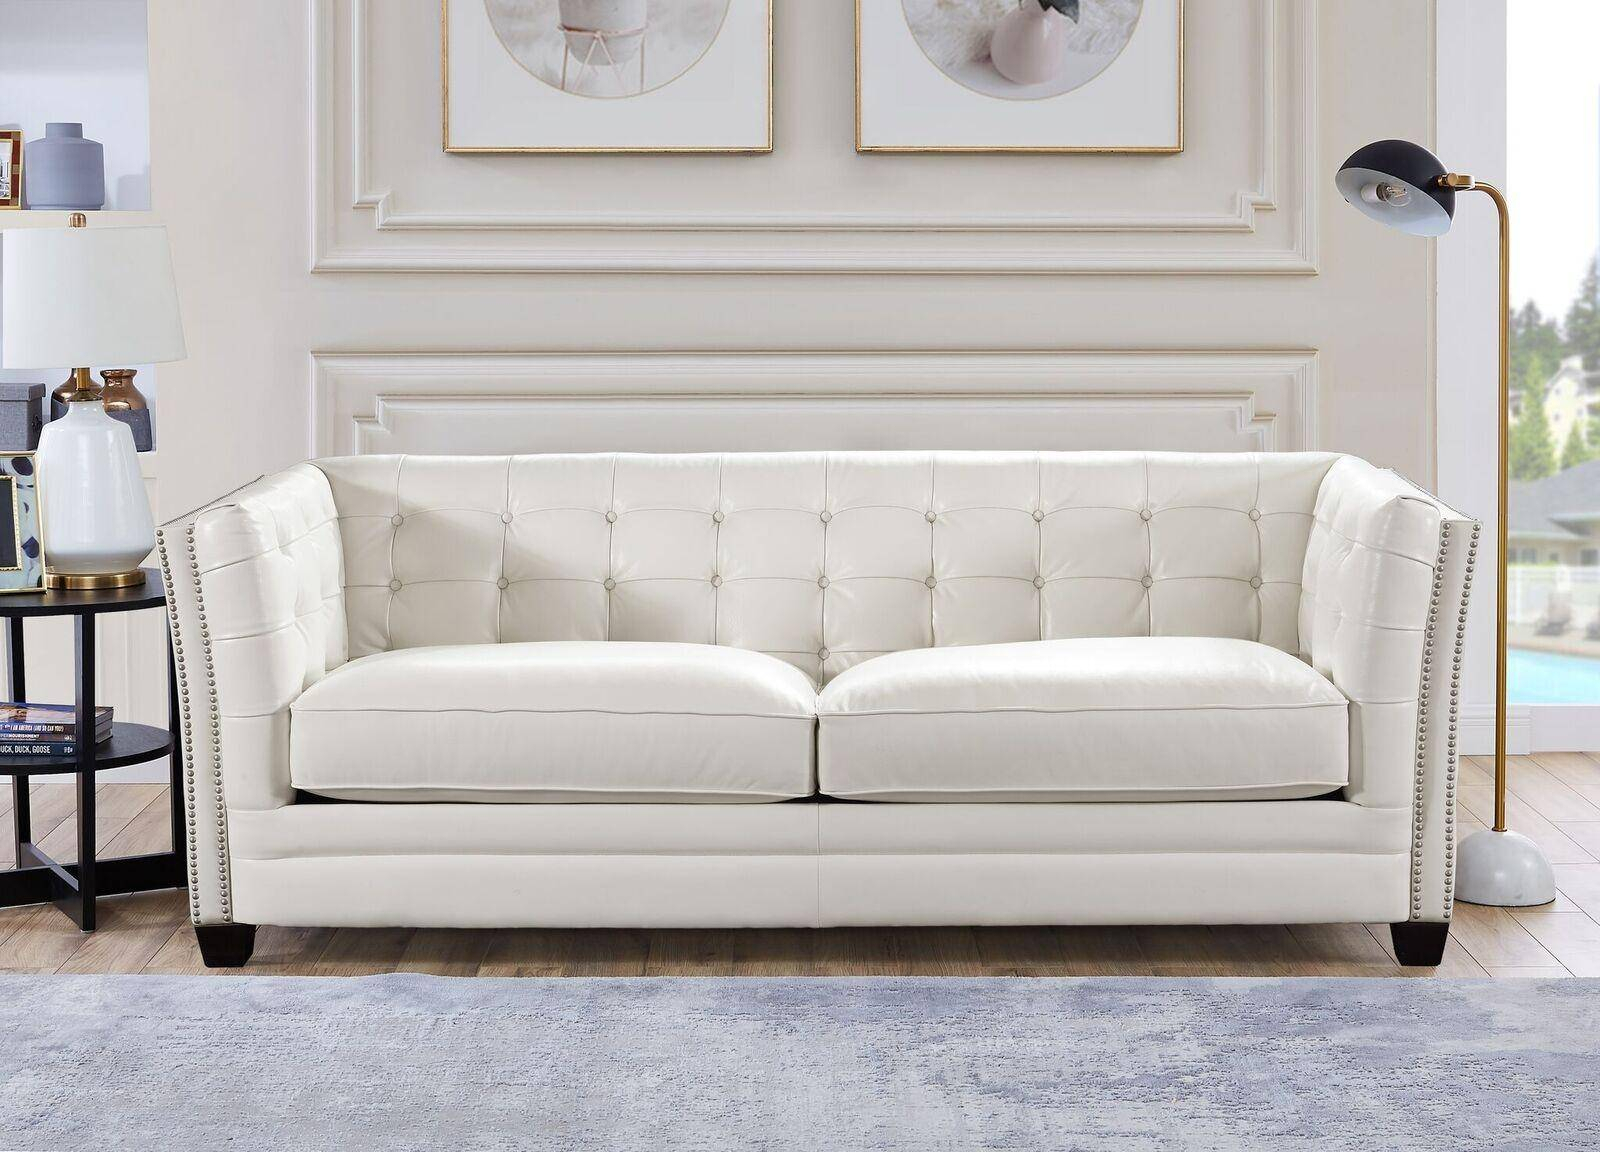 Top Grain Leather White Tufted Sofa Hydeline Cordova Intended For White Sofa Chairs (View 1 of 15)